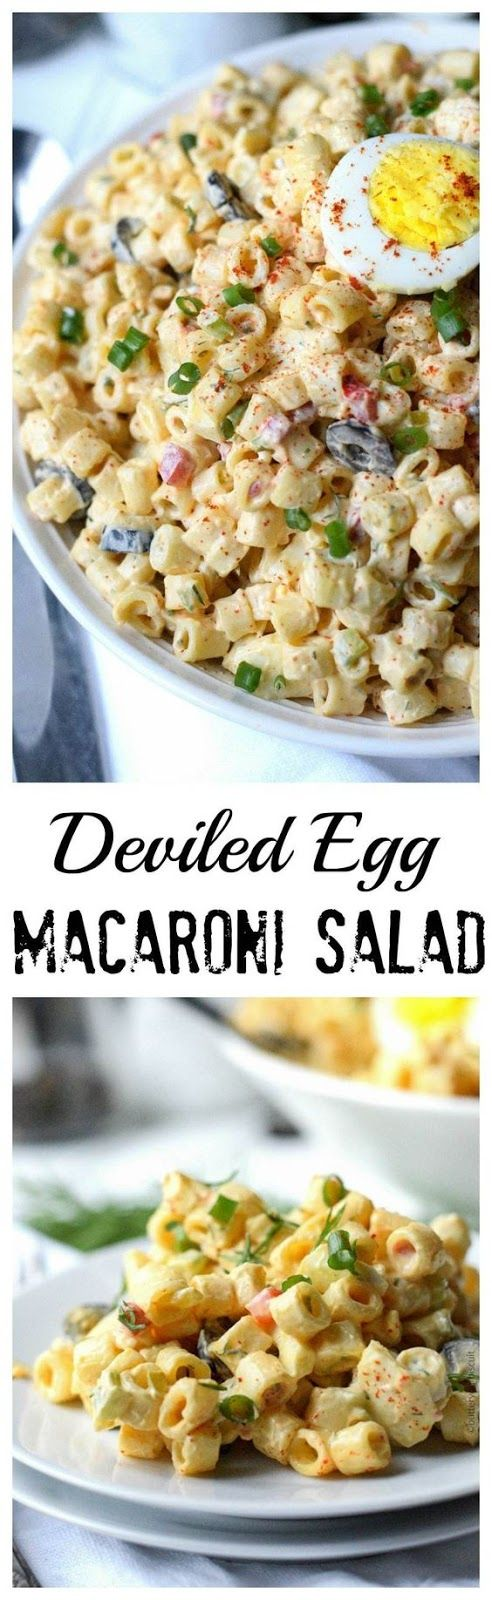 INGREDIENTS 16 oz salad macaroni or Ditalini pasta 1½ cups Mayonnaise 3 tablespoons sour cream 2 tablespoon mustard 2 tablesp...